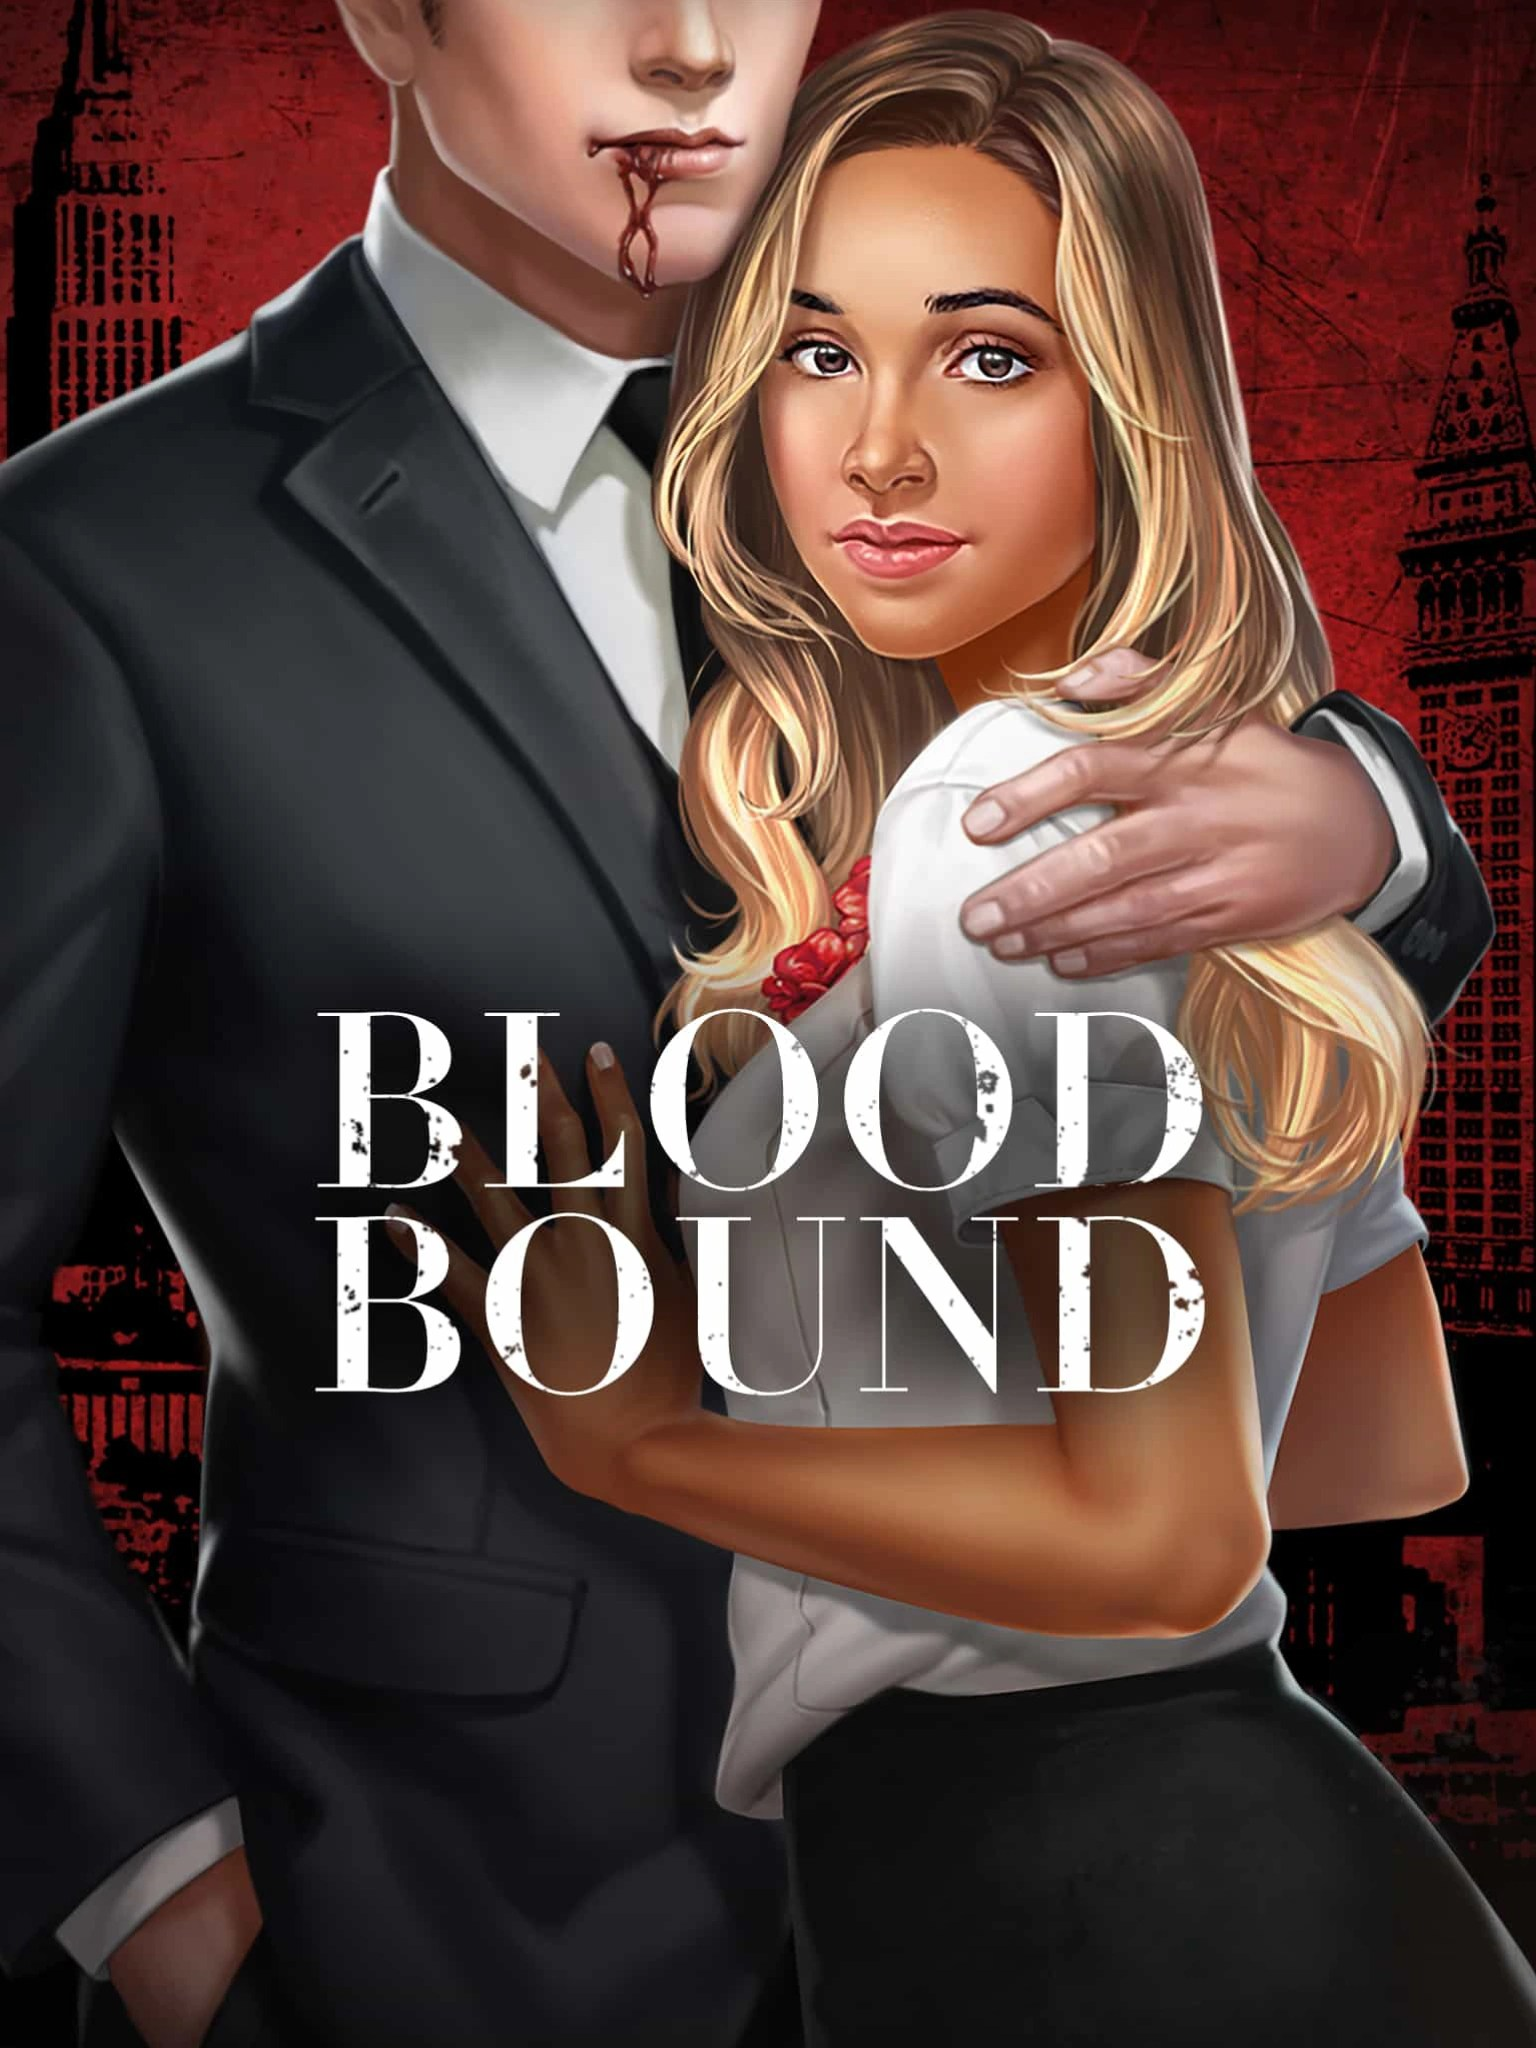 Blood Diamonds Libro Bloodbound Book 1 Choices Choices Stories You Play Wikia